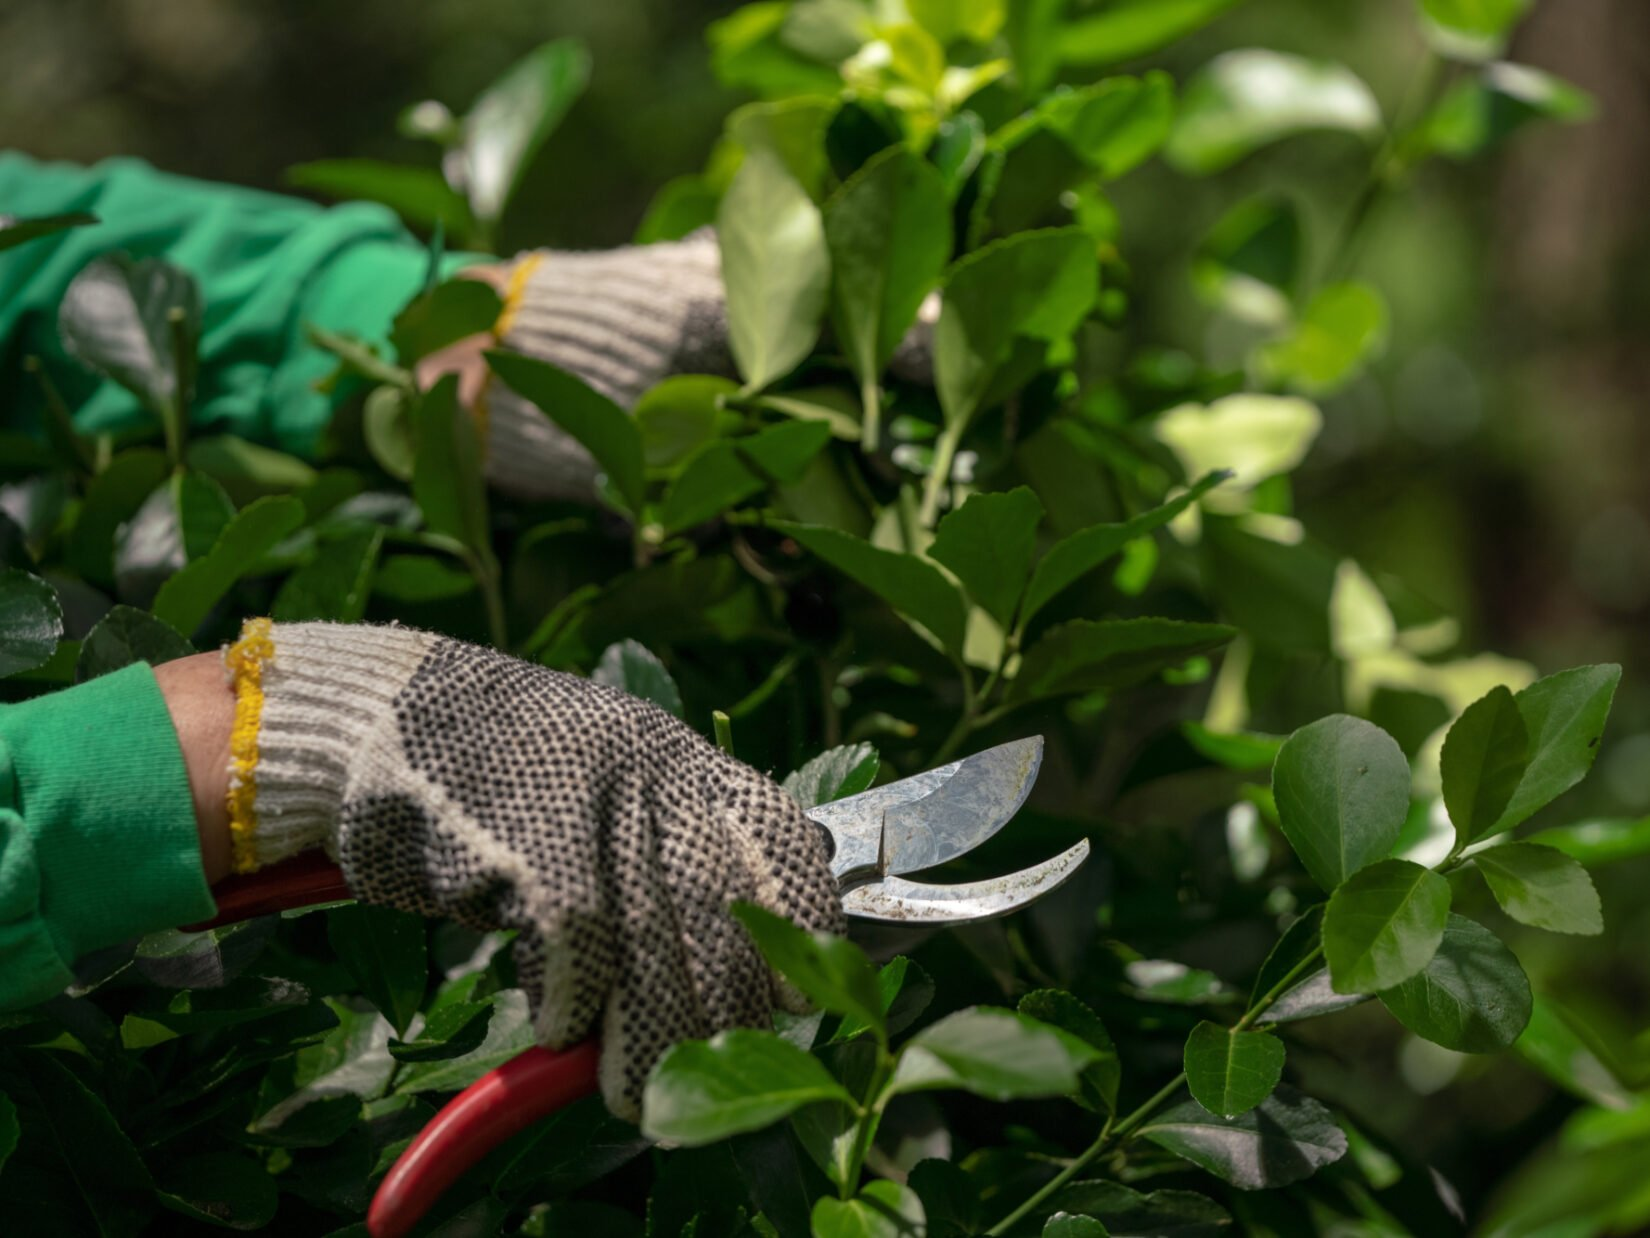 A close-up shot of the gloved hands of a Conservancy gardener caught in the act of pruning